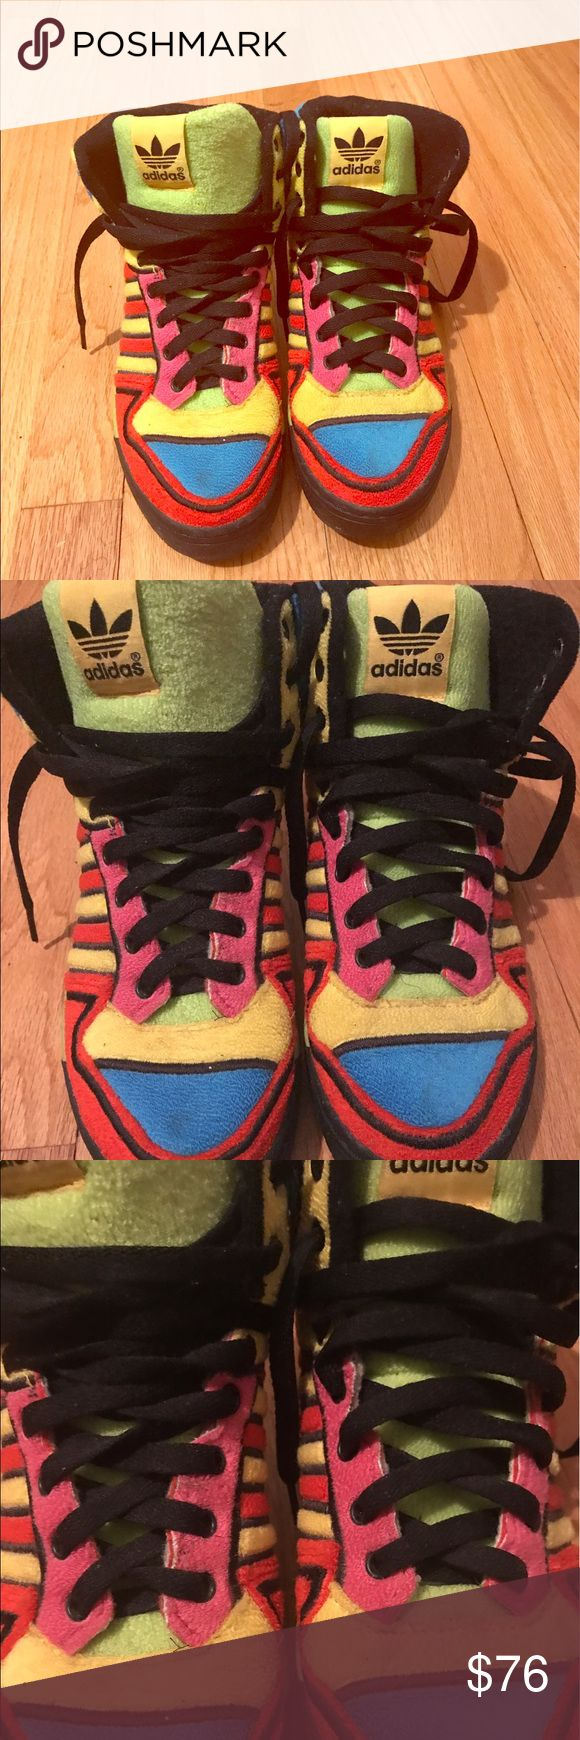 Adidas Jermey Scott Multicolored High Tops The shoes are missing the original wings. Fabric is great Condition. Please contact me with questions Jeremy Scott x Adidas Shoes Sneakers